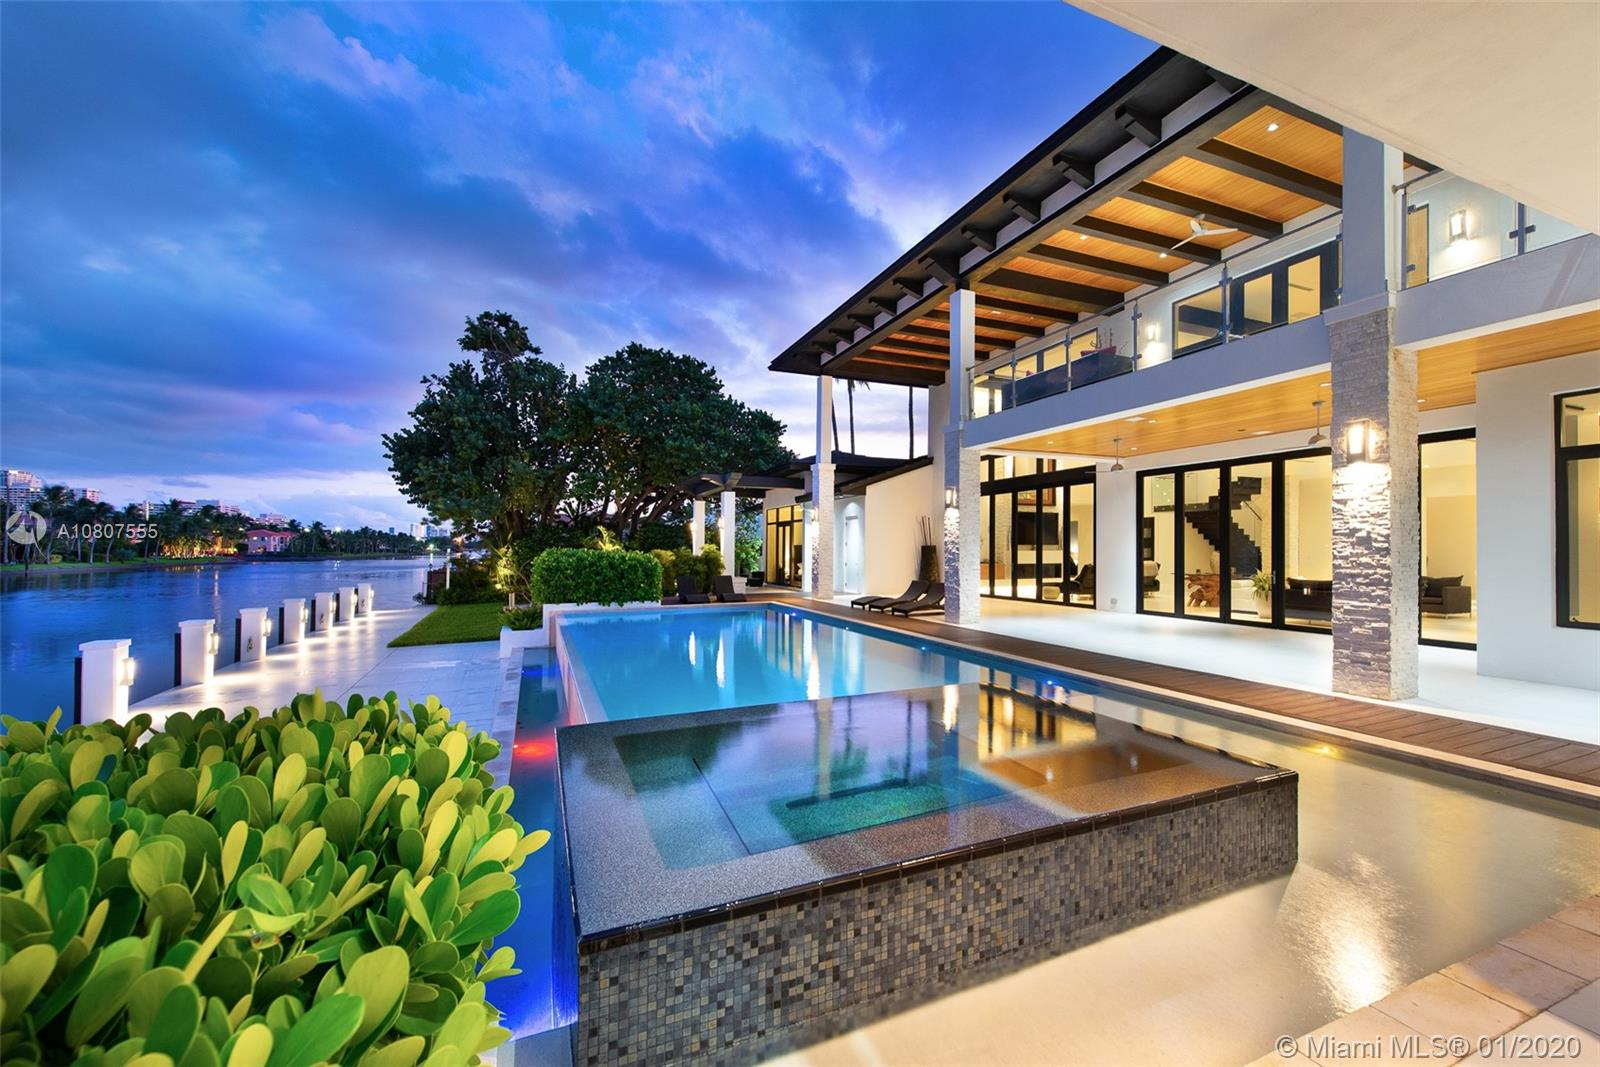 New  Built Waterfront Estate in Hollywood  to the highest construction standards. Privately gated , the approach to the home is grand,lush landscaping  with a spacious deck,boat lift , Infinity pool, spillover spa and fire pit  provide year -round entertainment. With 150 feet of dockable frontage on a 120 ft deep canal. This property boosts access to the Atlantic ocean.A smart home with  a elegant interior  features touches from stone accents to glass stairs and private elevator .Gourmet kitchen, expansive master bedroom with  split master bath. This property features 5 large bedrooms with 5 bathrooms and a half. Hollywood Golf Estates is a cozy enclave of contemporary homes  epitomizing the South Florida  lifestyle .